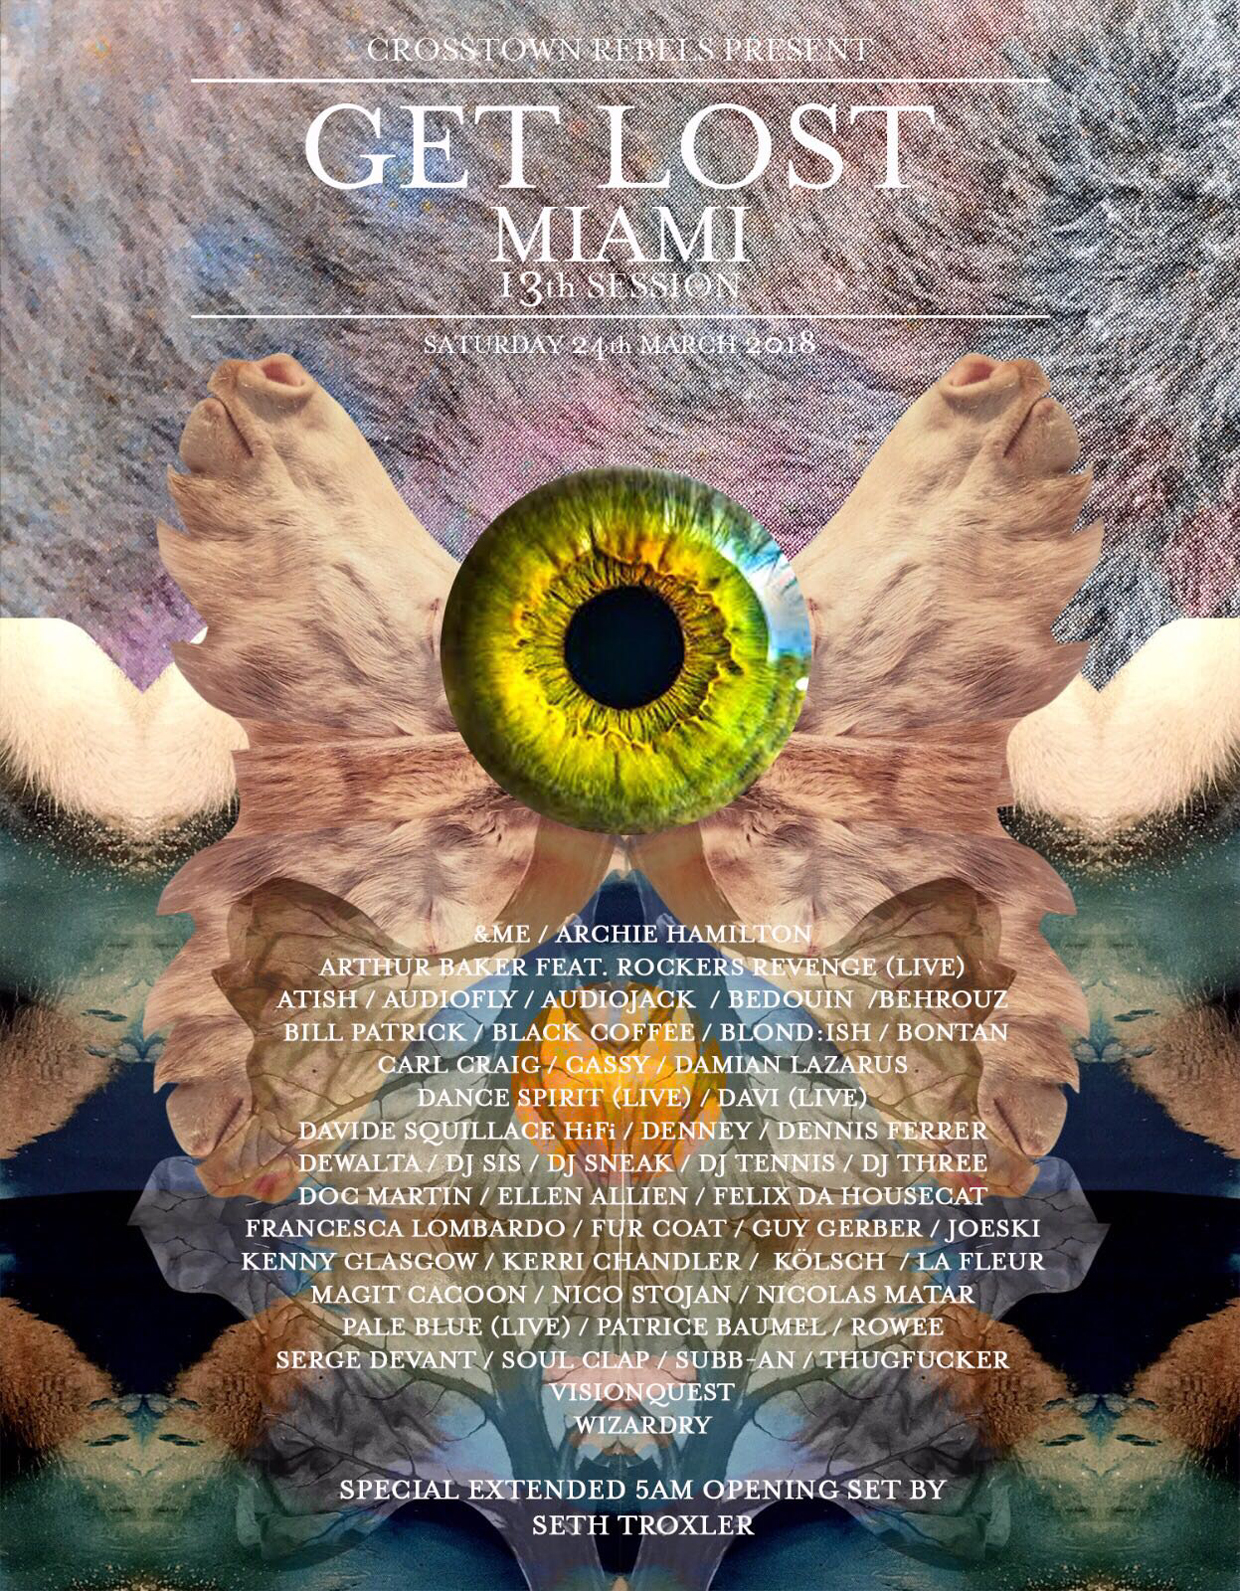 Damian Lazarus locks 40-artist-strong line-up for Get Lost Miami